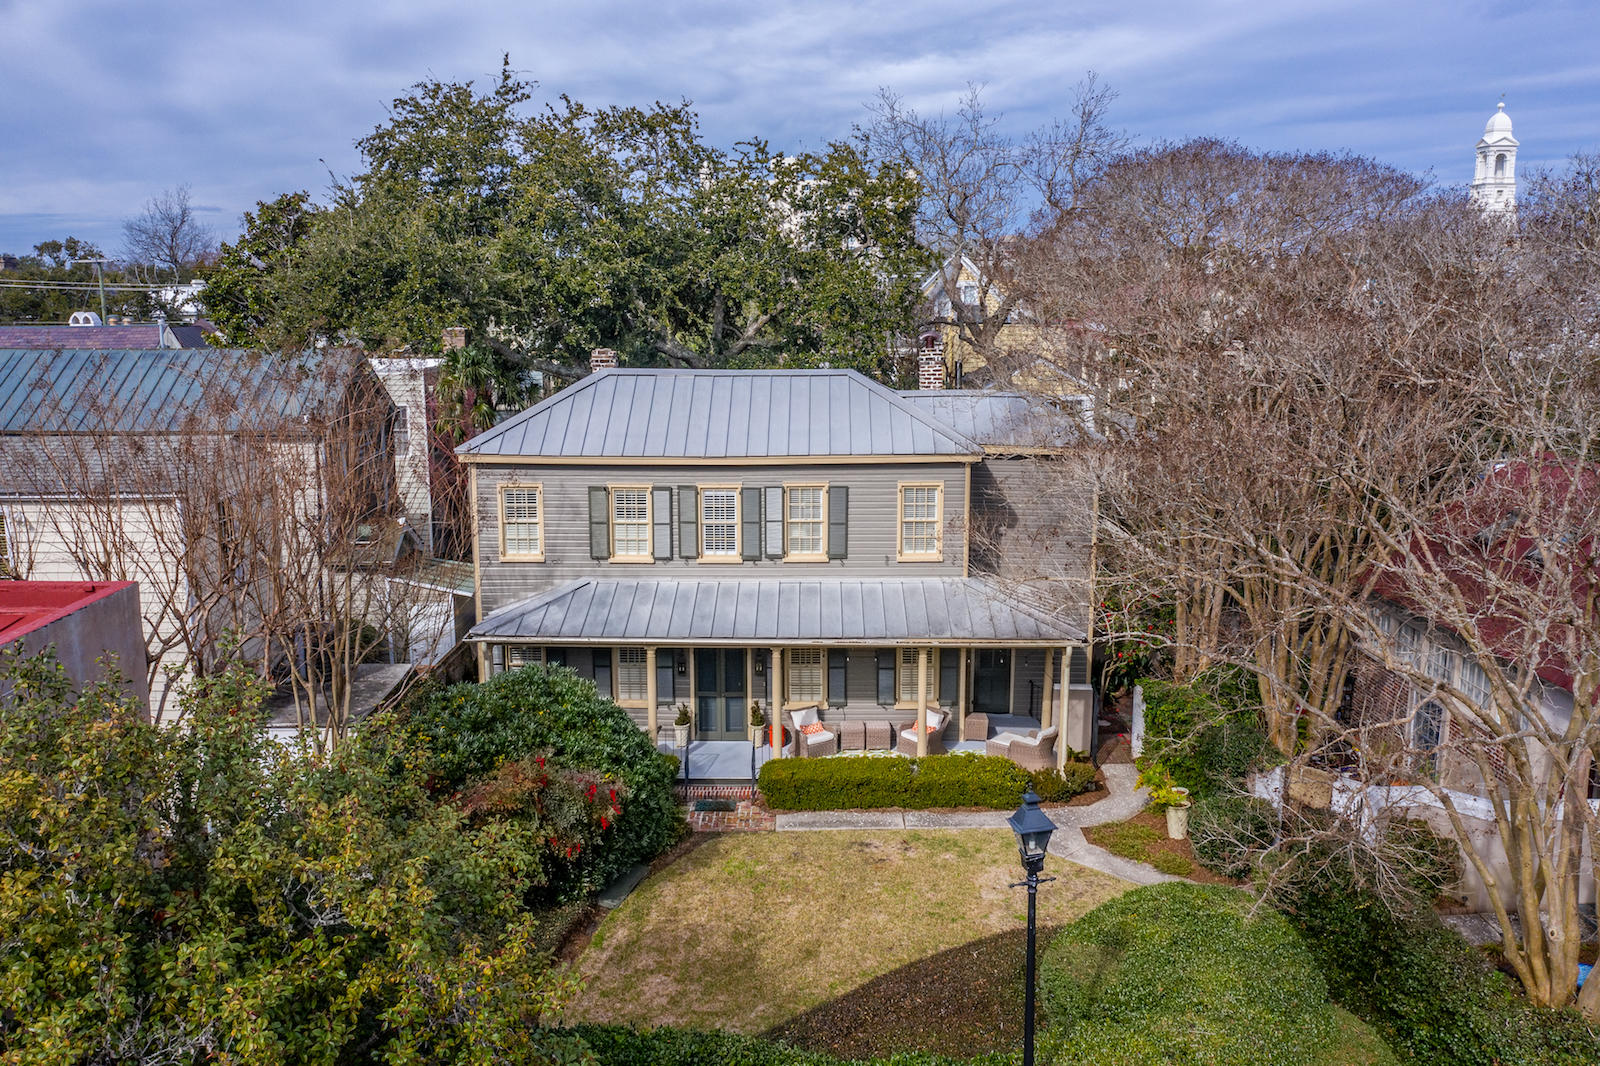 Crafts House Homes For Sale - 125 1/2 Queen, Charleston, SC - 0